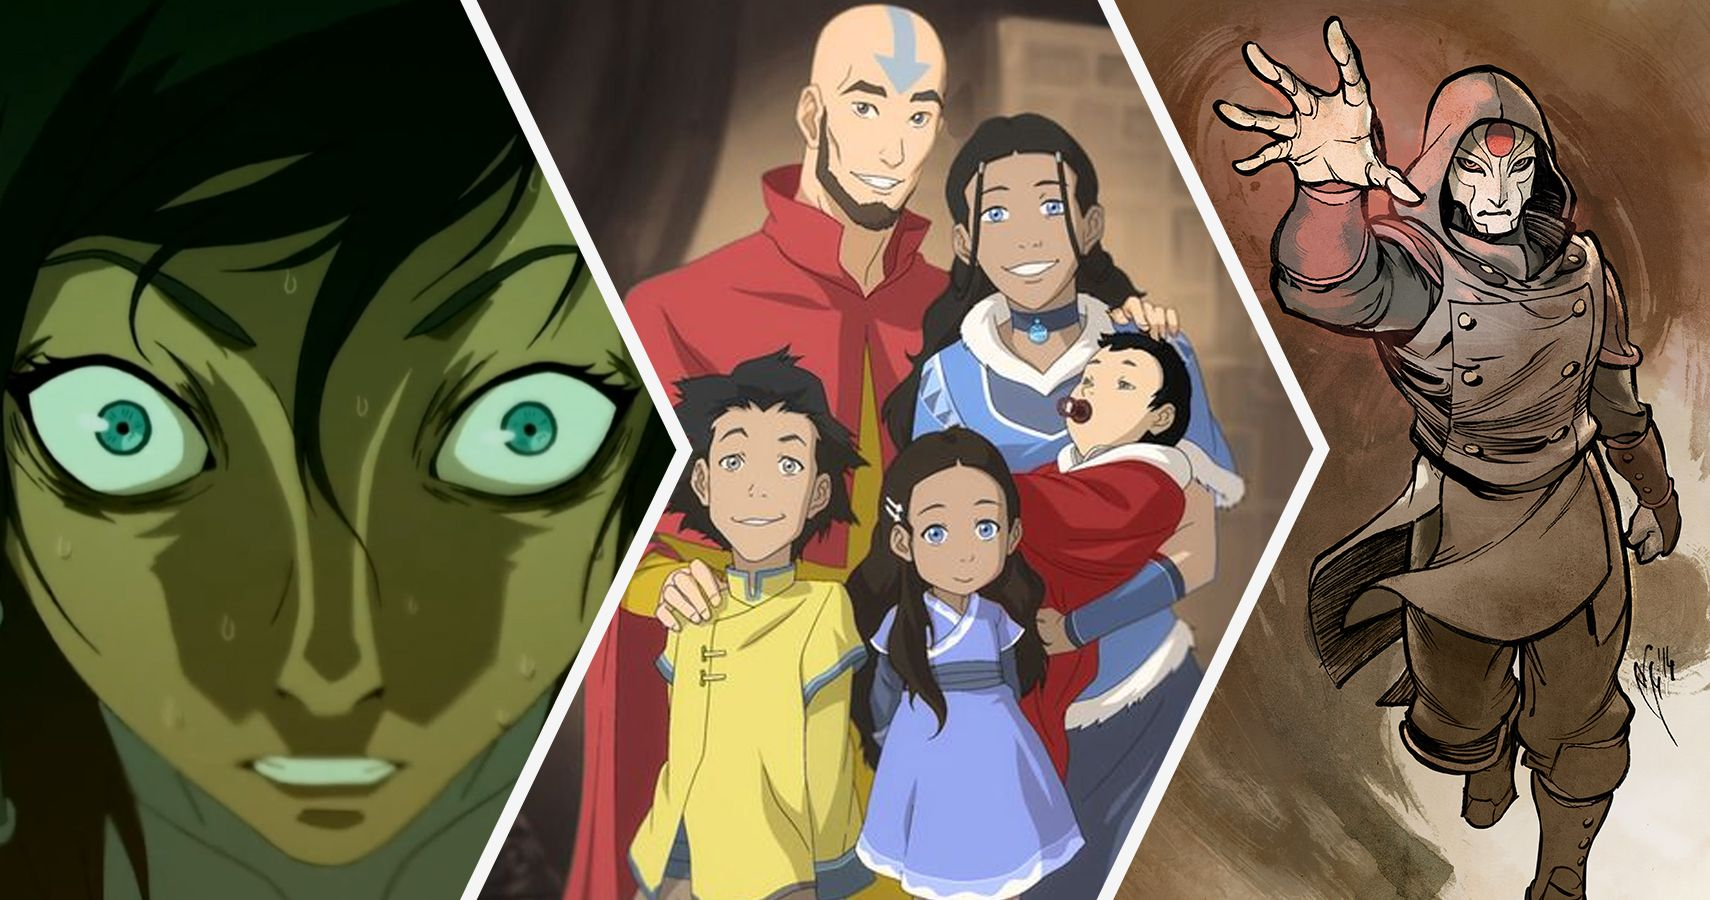 Speaking, opinion, Avatar the last airbender fan characters